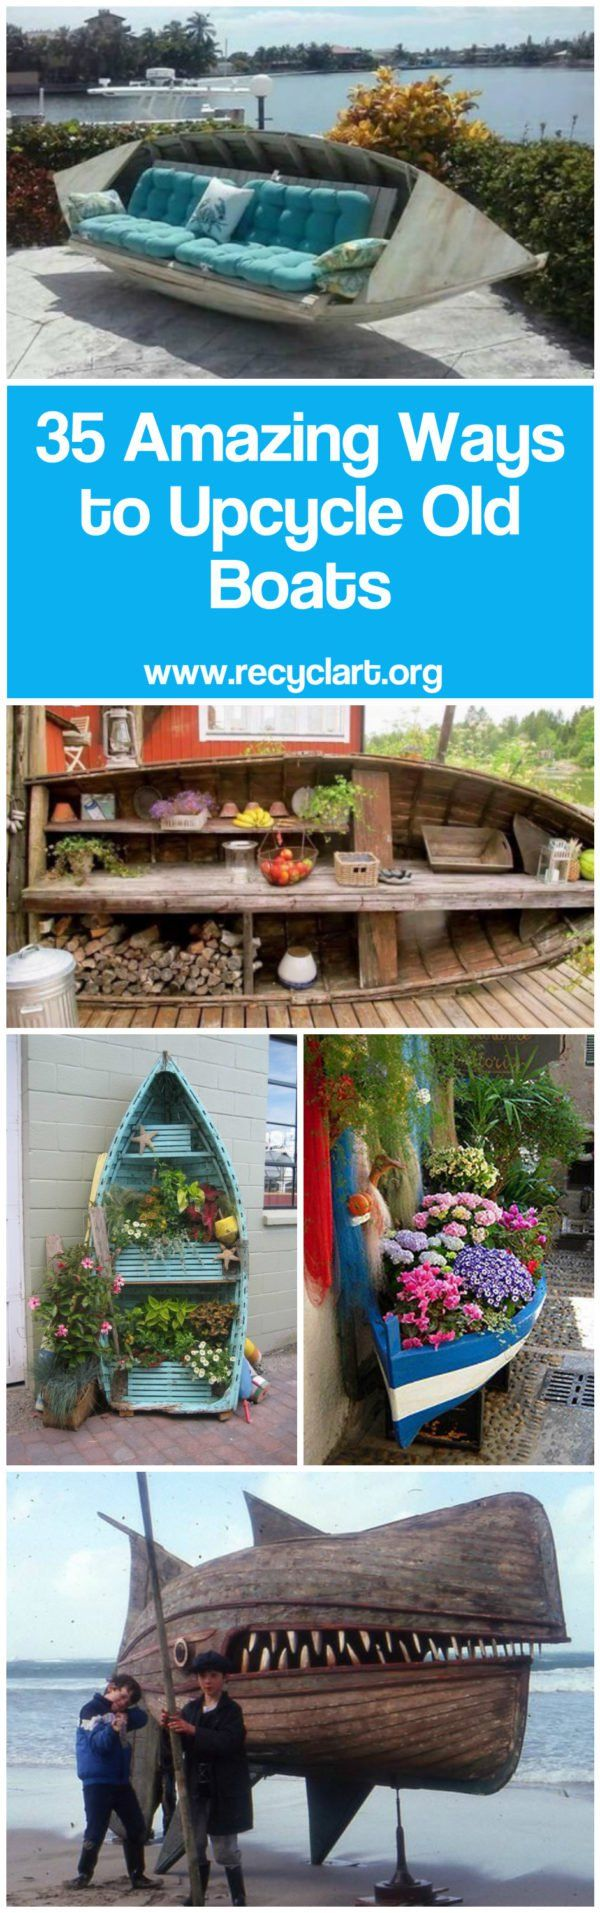 We already featured some nice projects made from old upcycled boats. Here are 35 of the best ways to reuse old boats for your inspiration. So, if you have an old and useless boat or if you can find one…